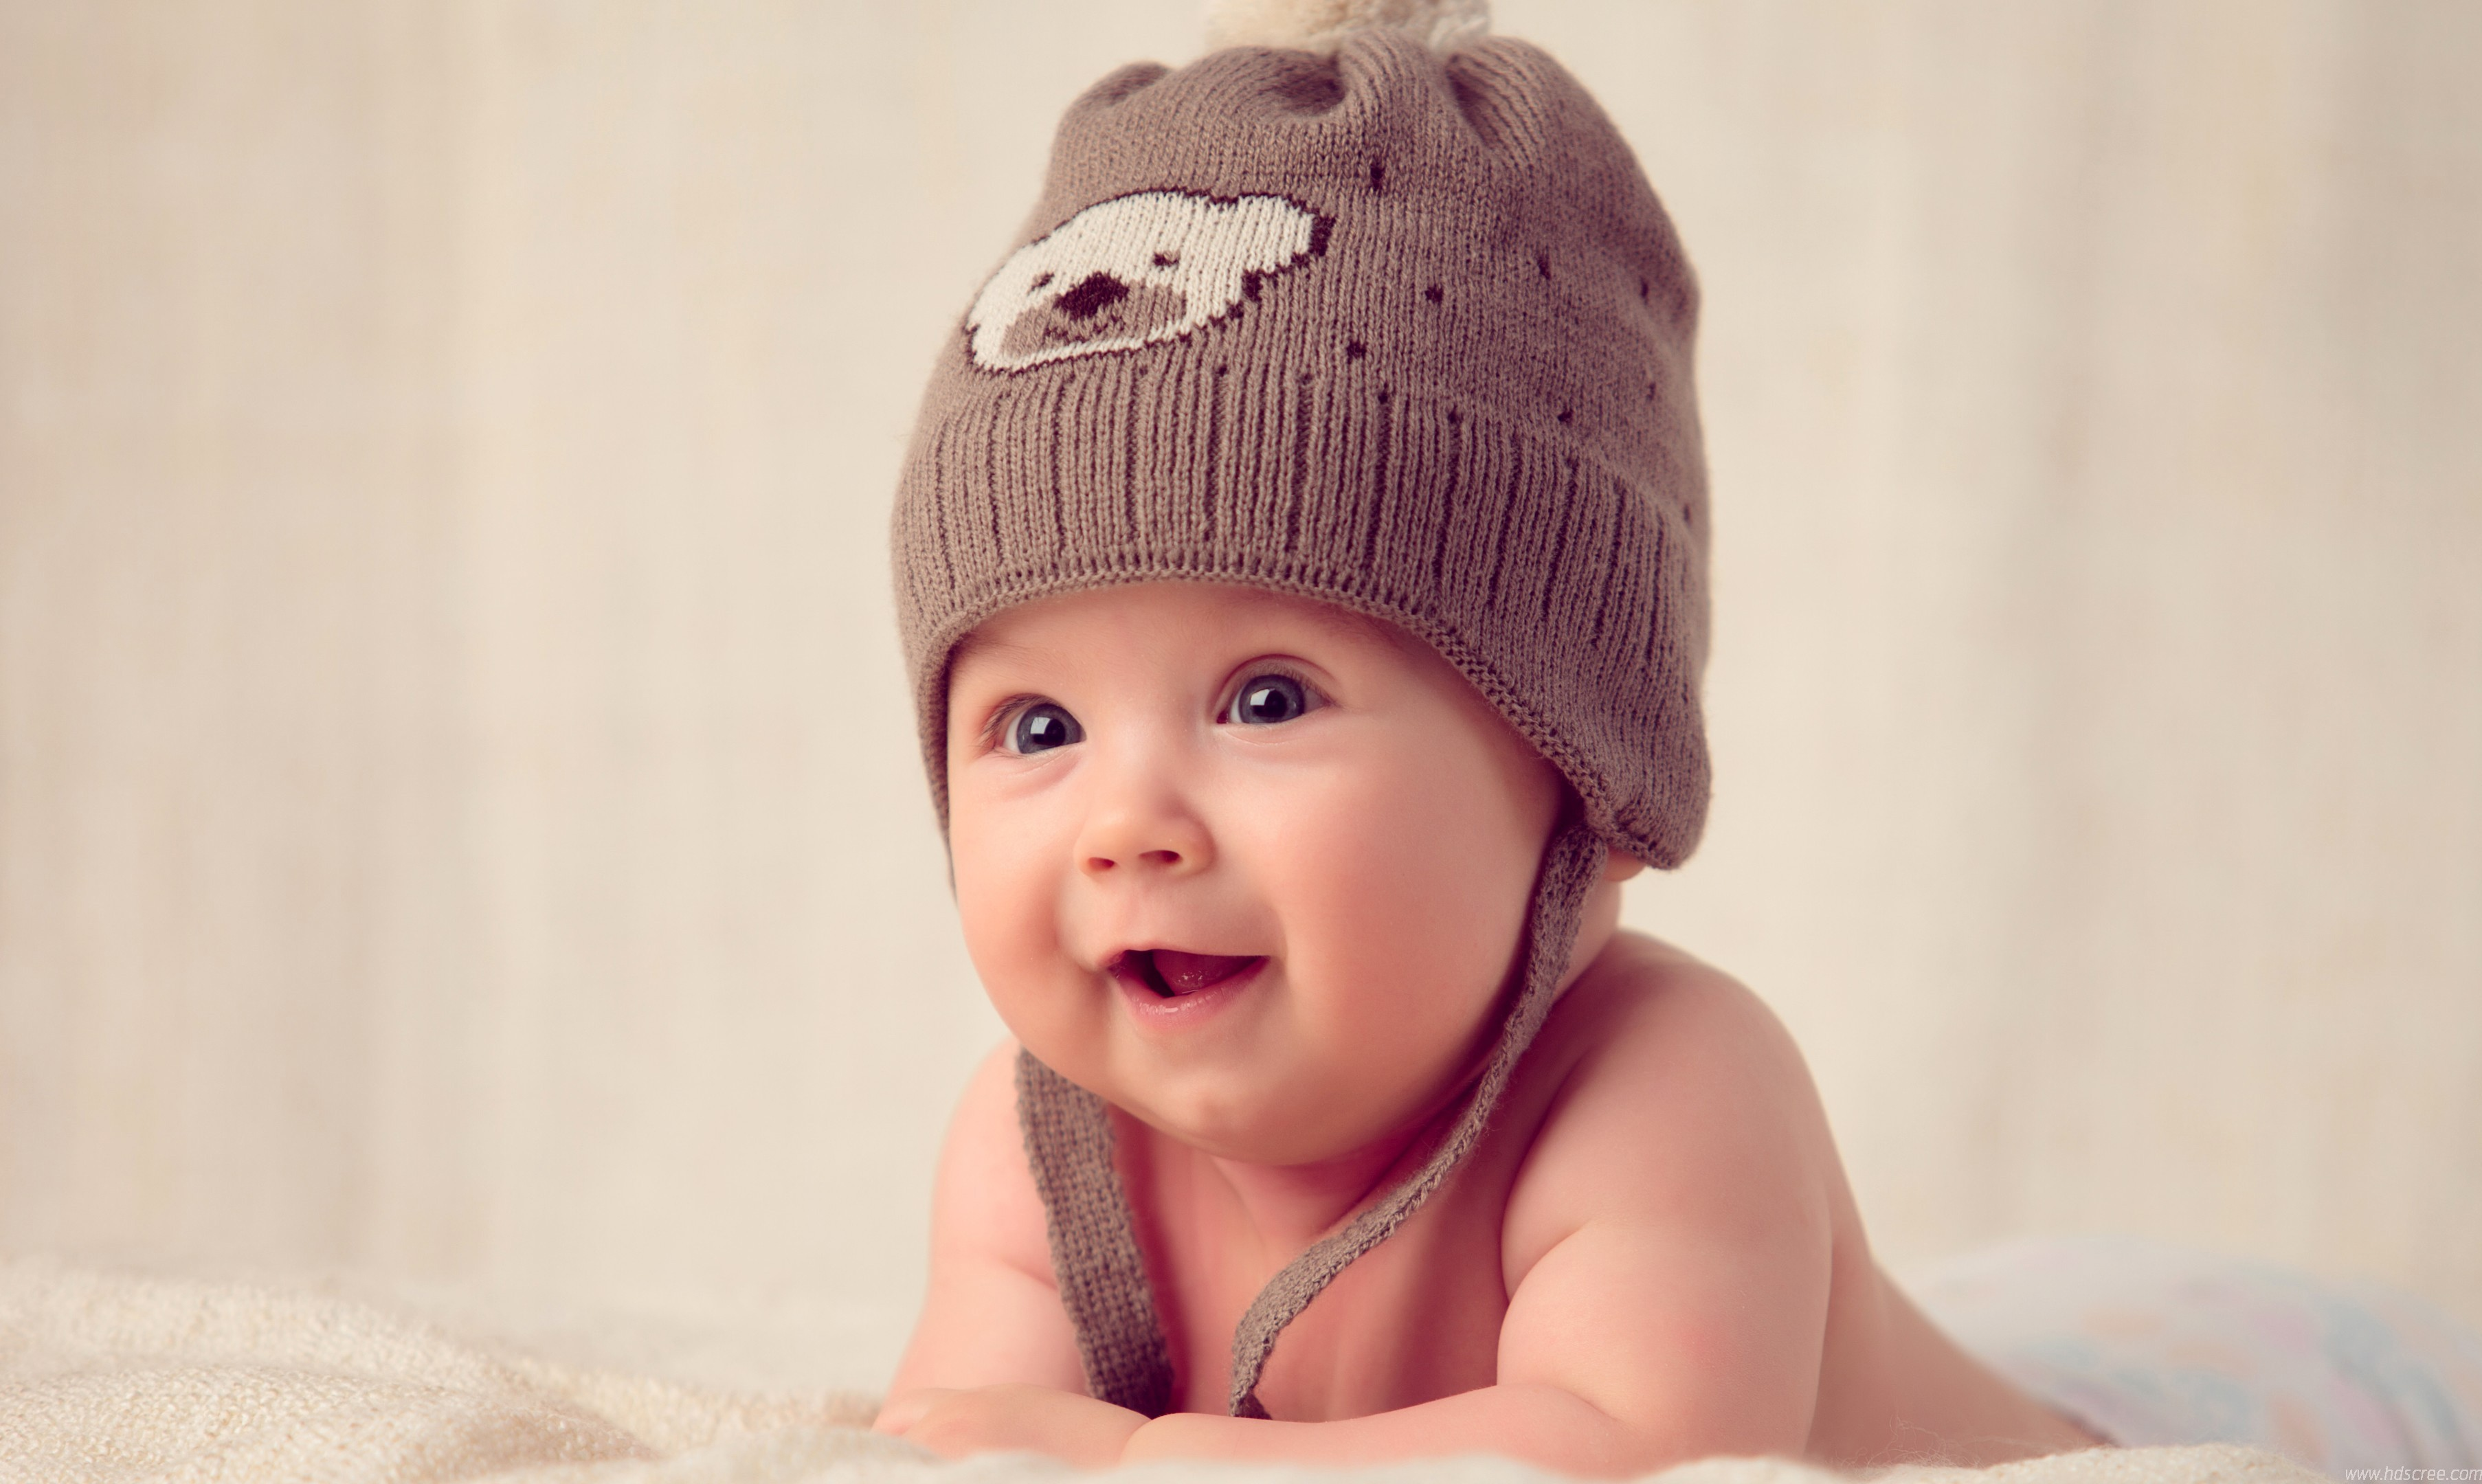 cute baby jpg - into.anysearch.co